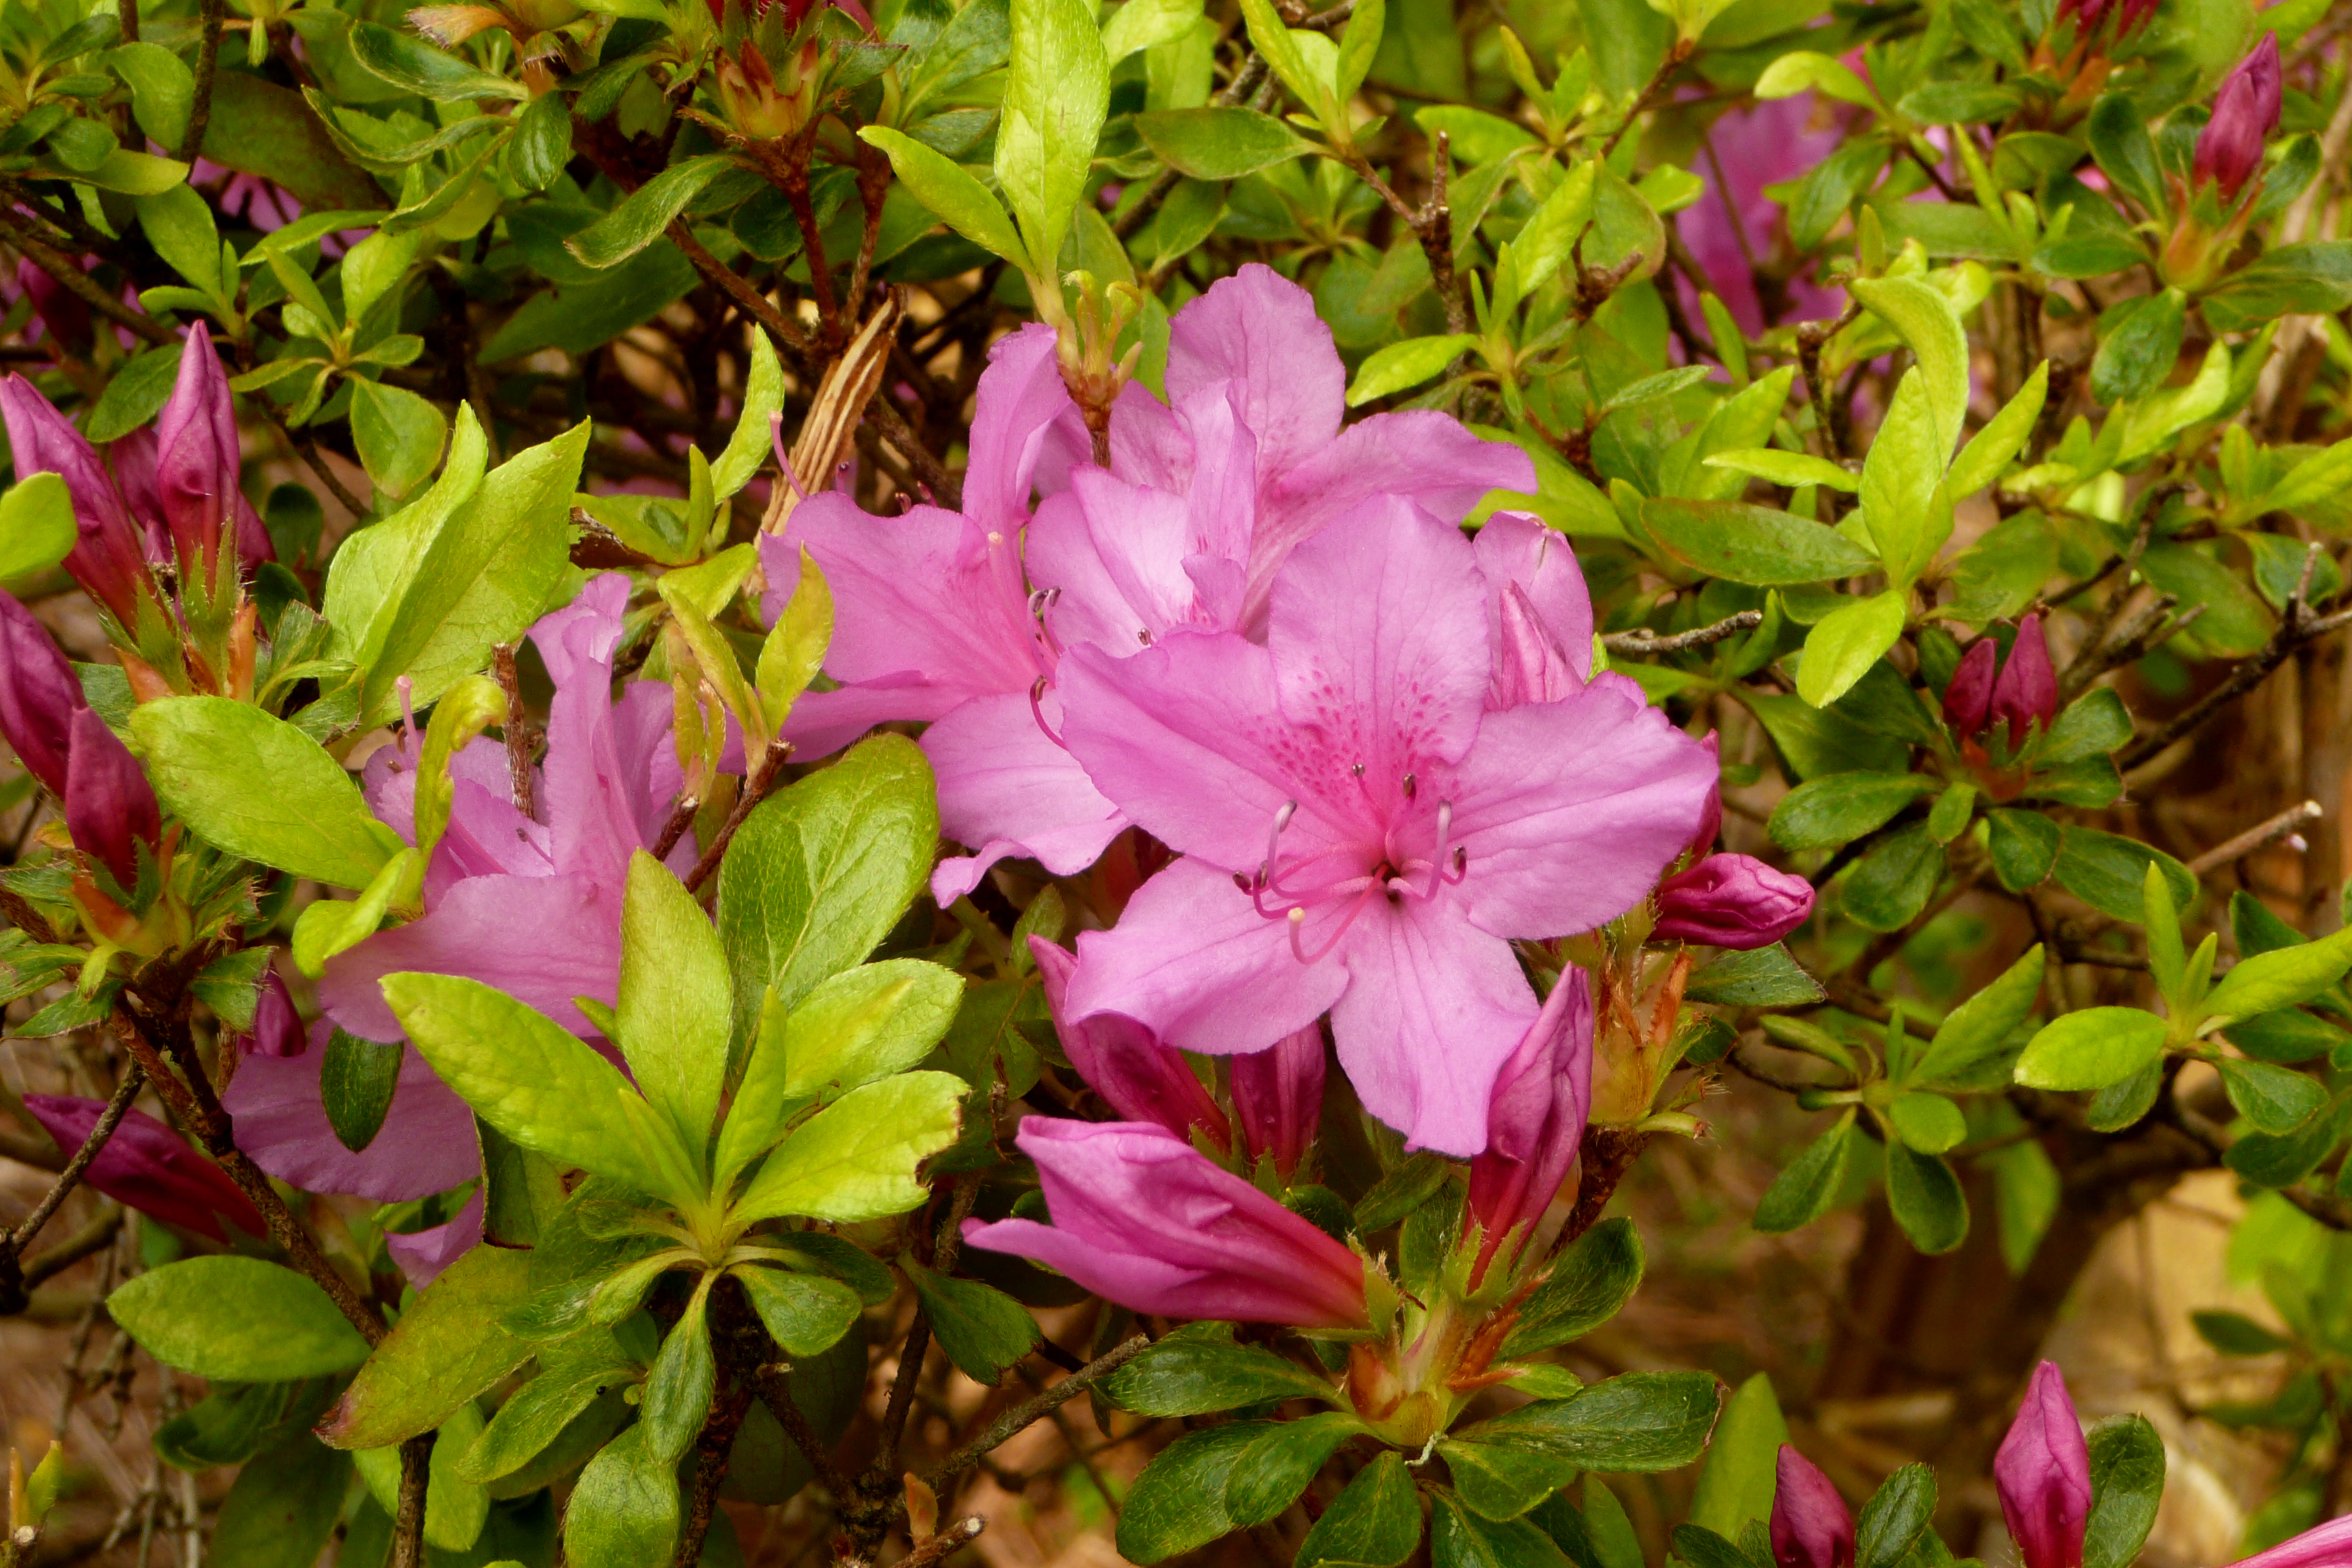 file:japanese gardens flowers 1 - wikimedia commons